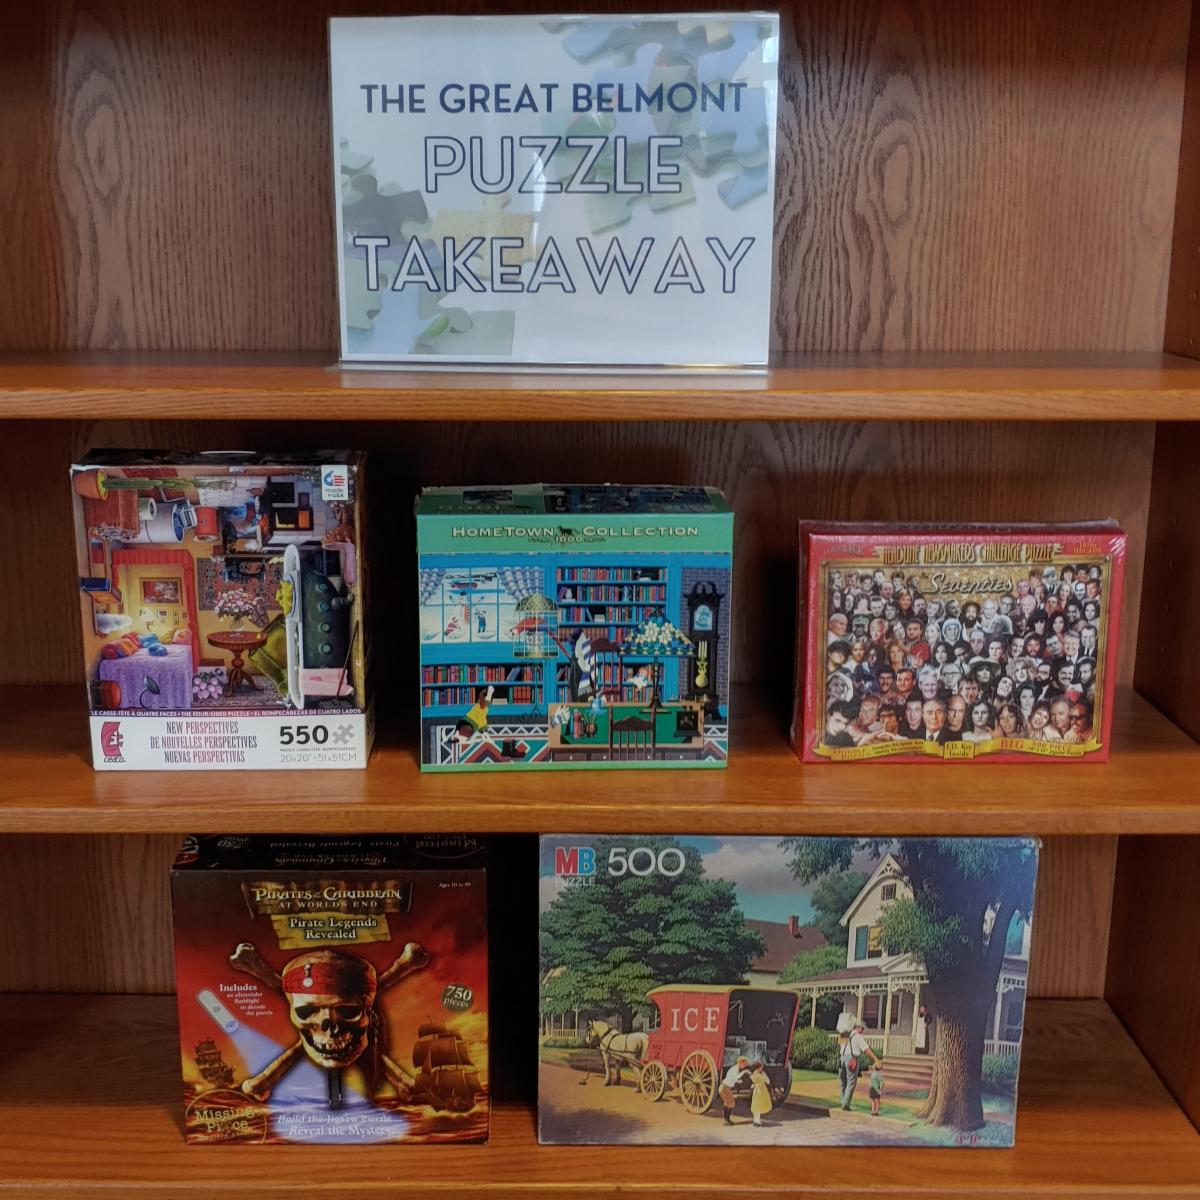 A bookcase with puzzles and a sign saying The Great Belmont Puzzle Takeaway